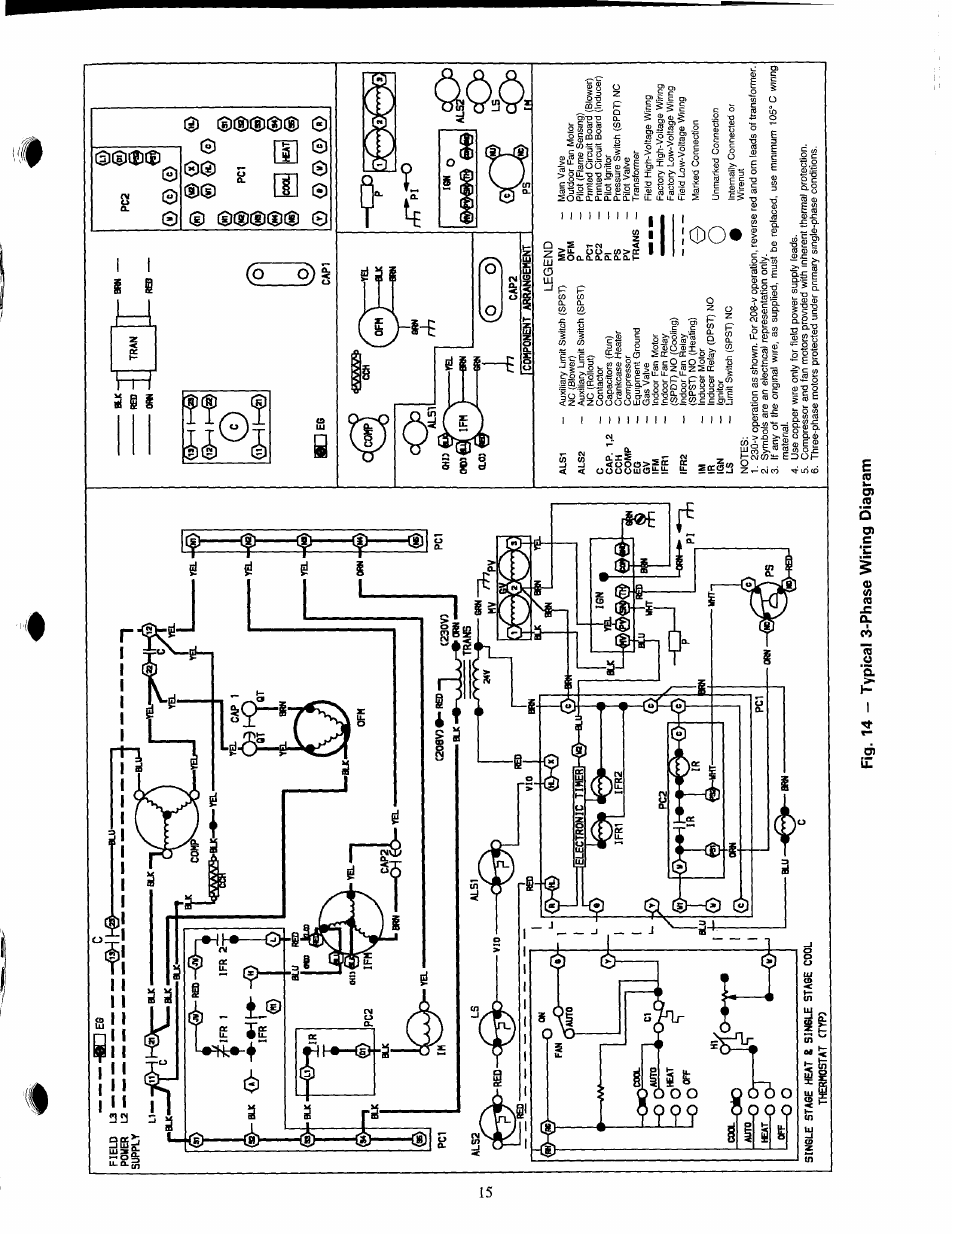 Fig 14 Typical 3 Phase Wiring Diagram 1 Co O Carrier 48nlt User Manual Page 15 27